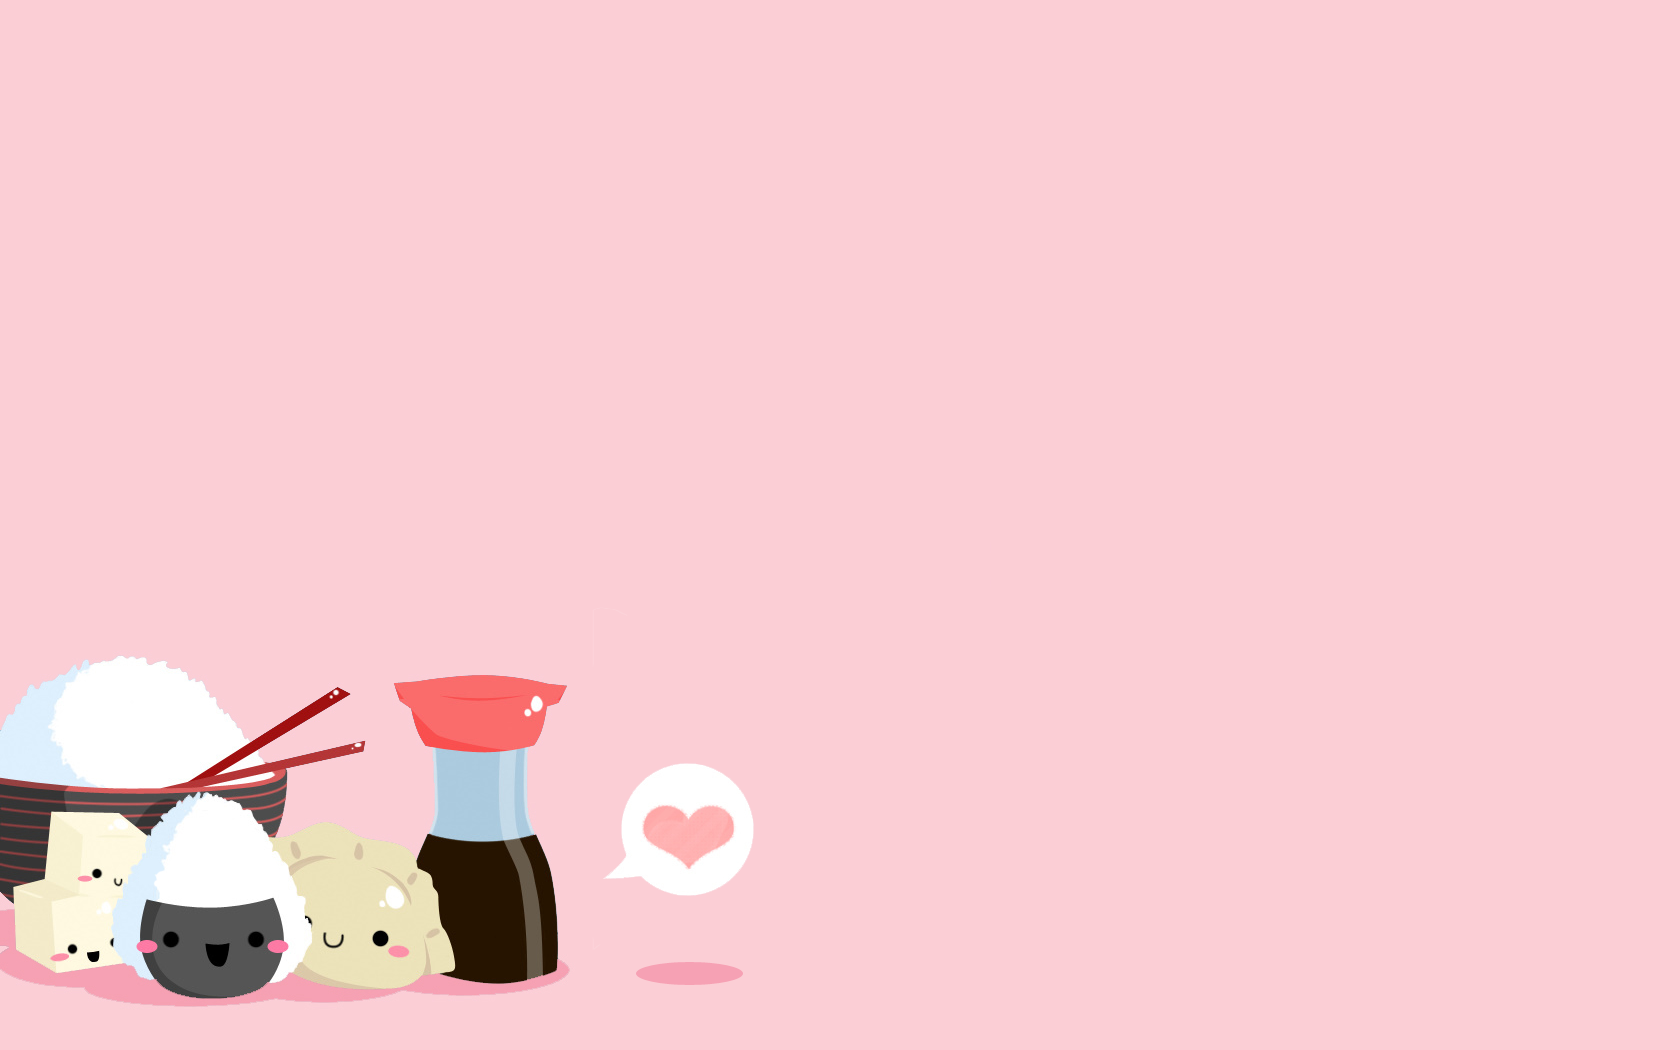 Cute kawaii wallpaper - SF Wallpaper